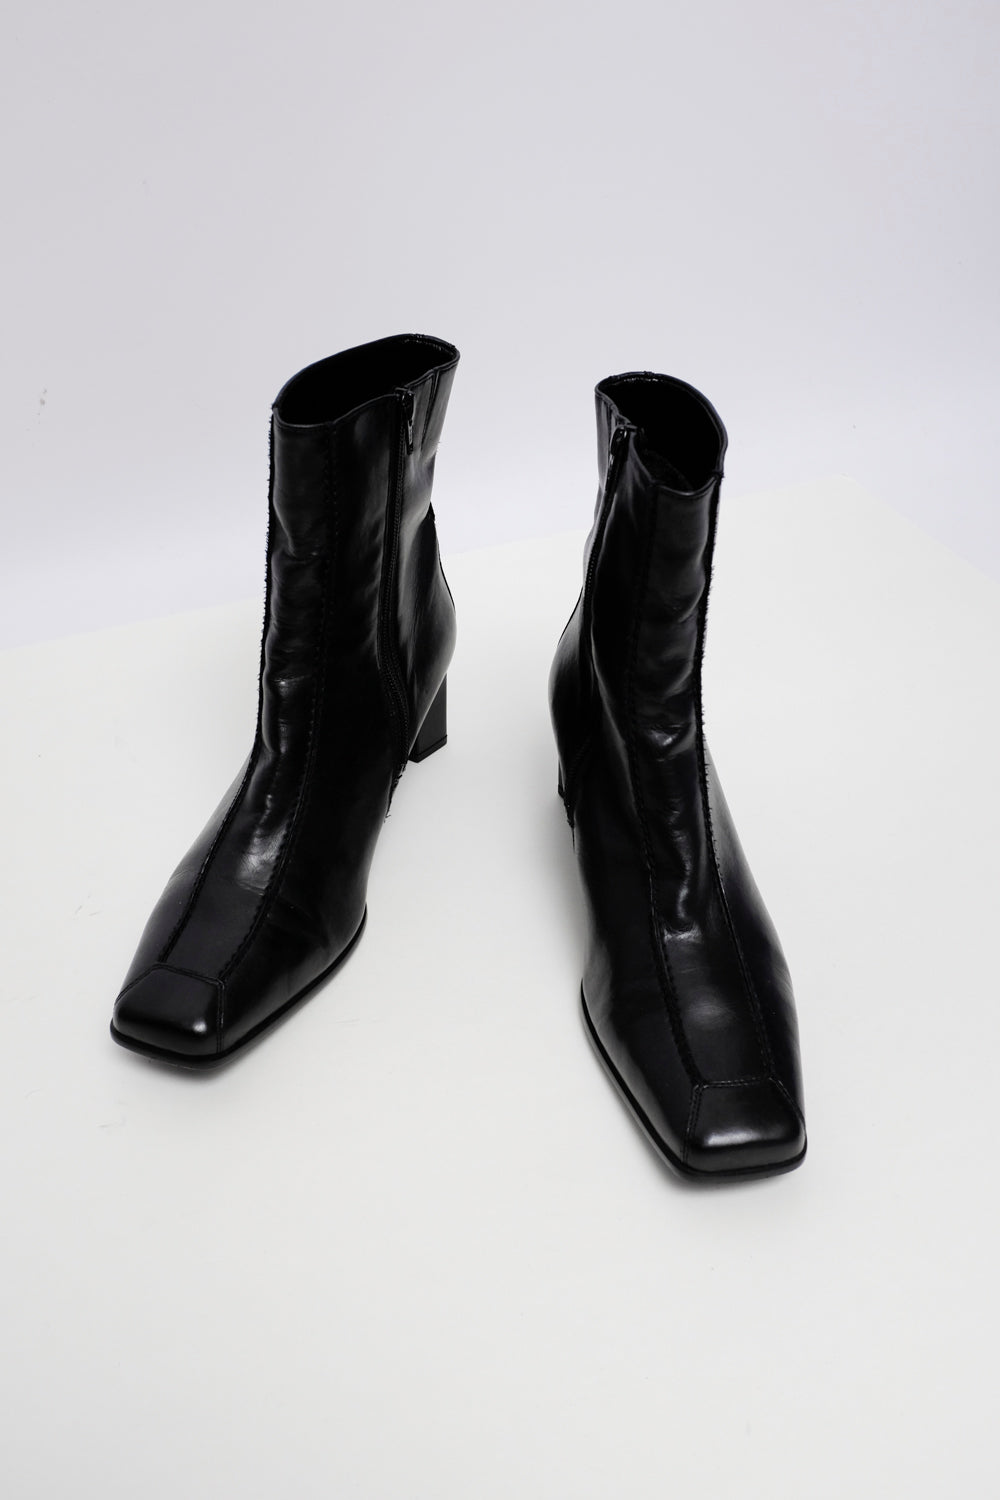 0020_PURISTIC WARM 41 LEATHER BOOTS